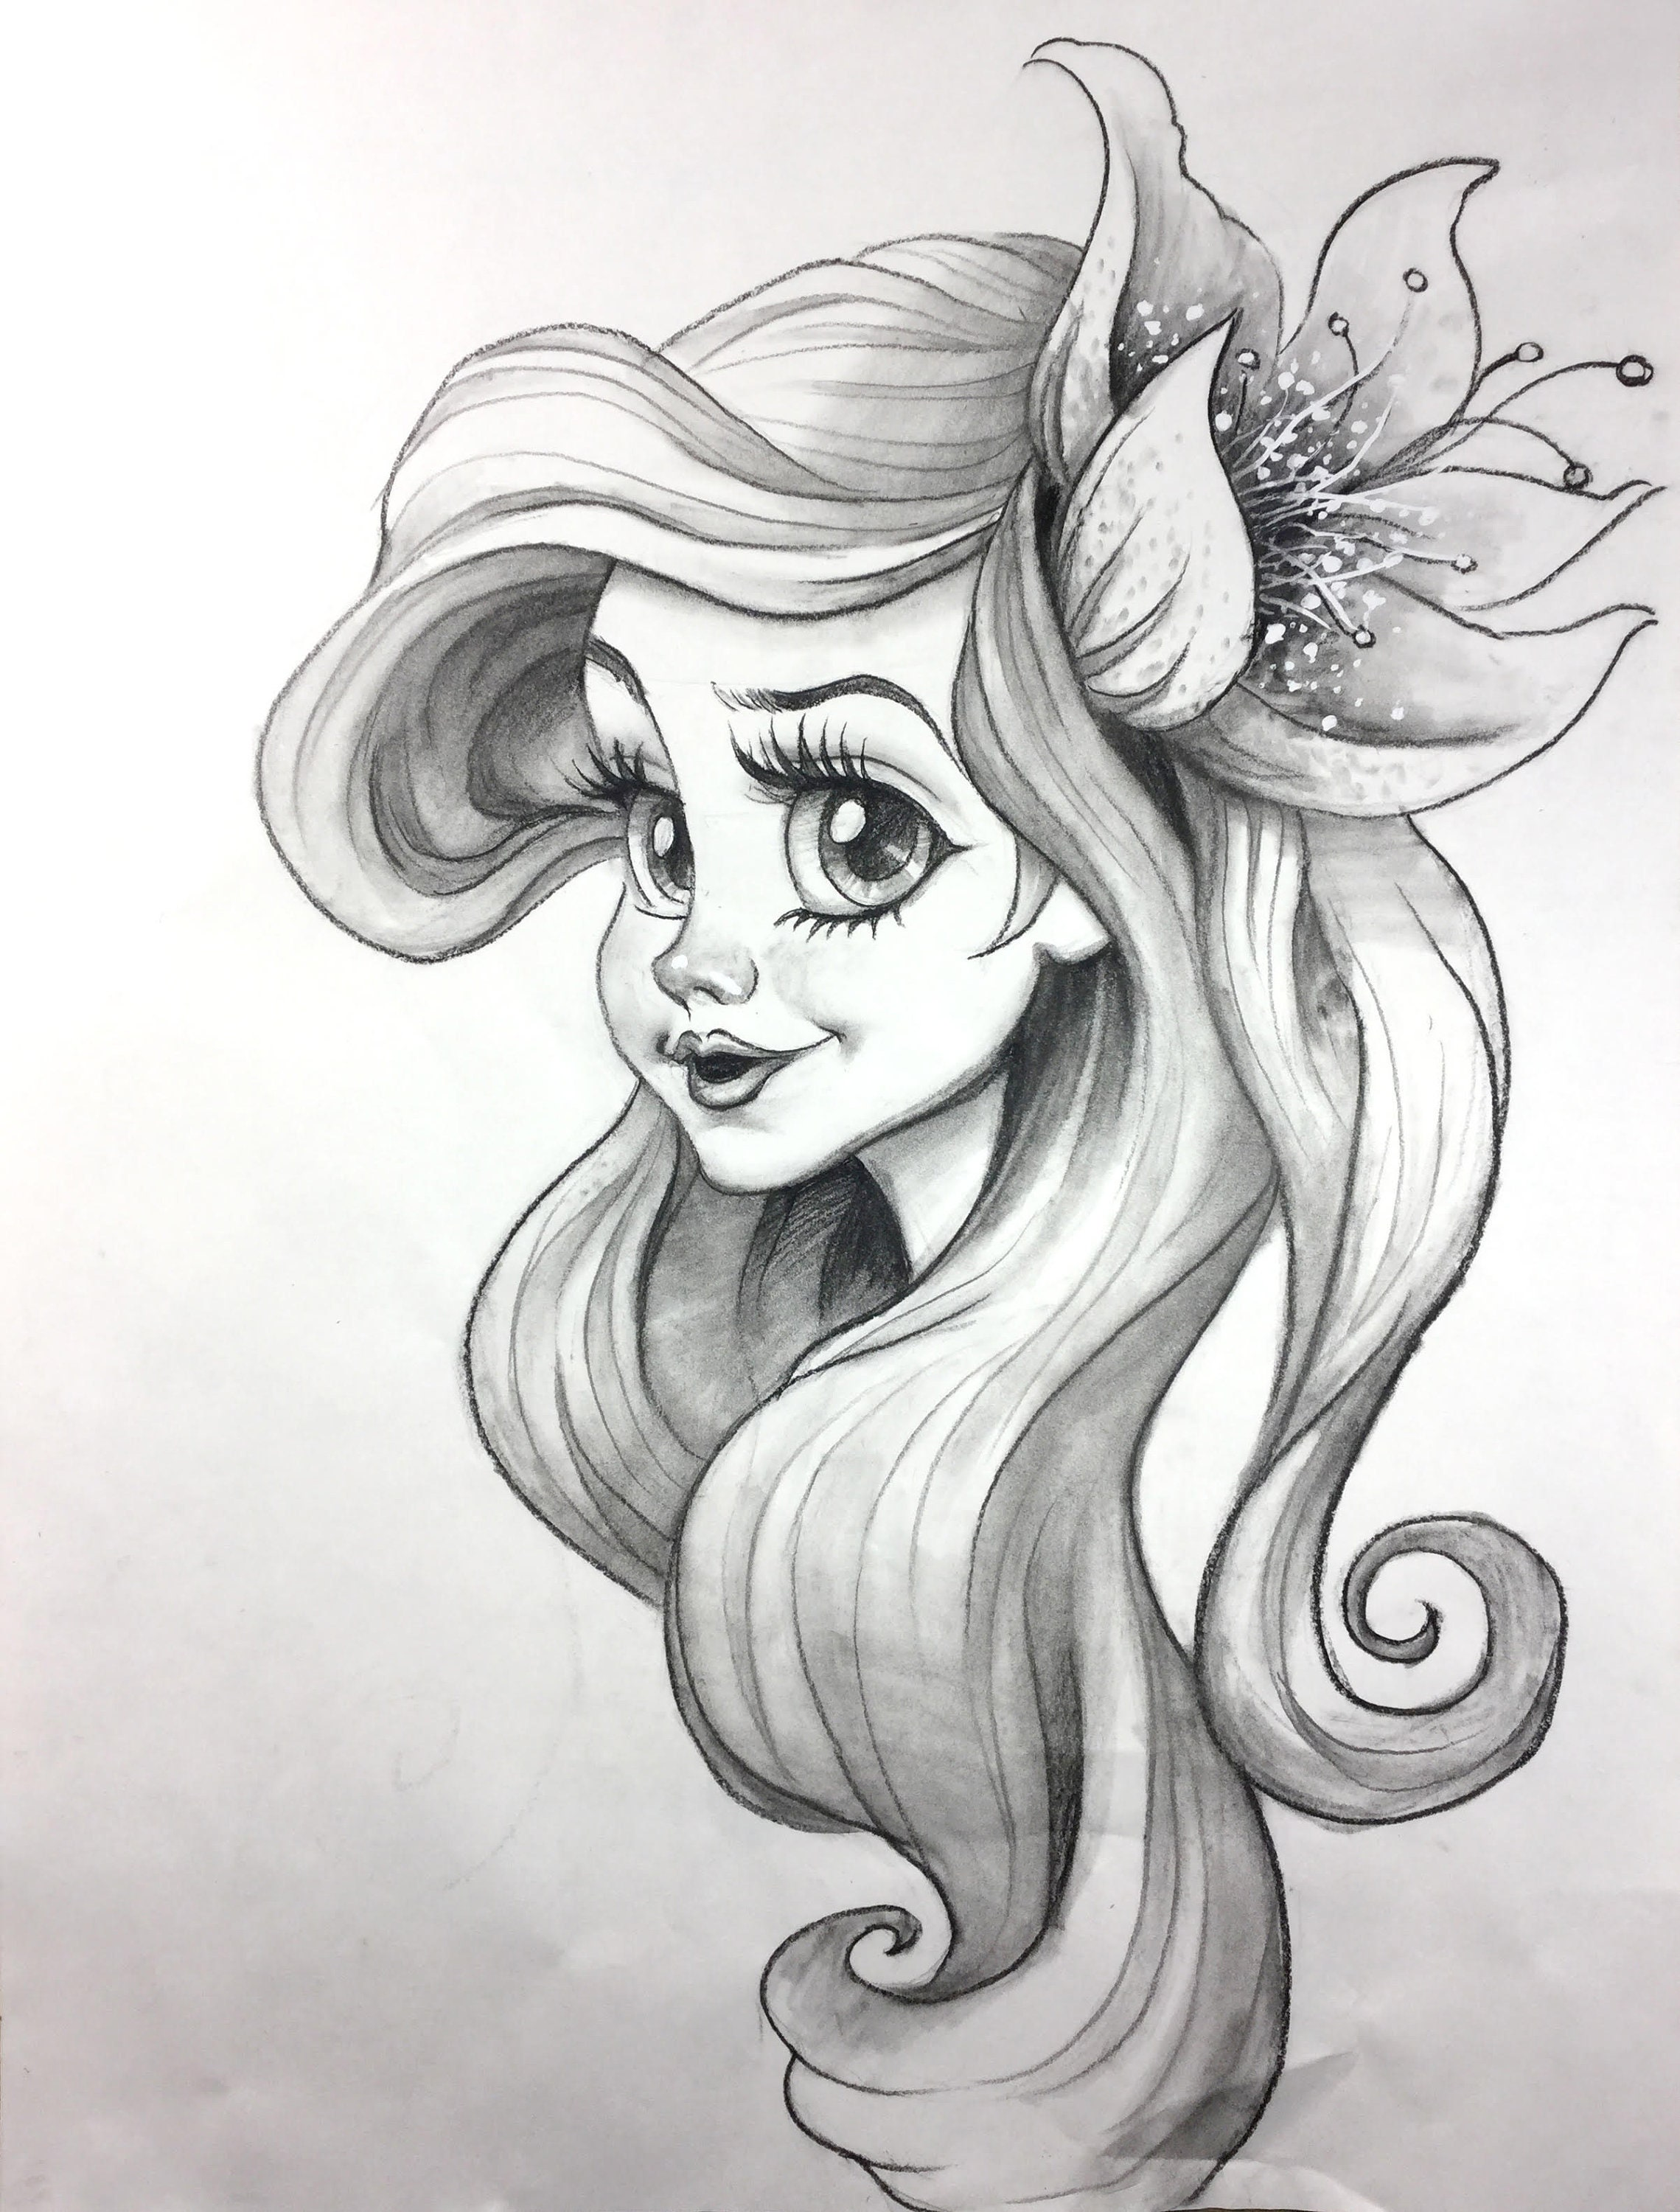 Little mermaid original charcoal pencil drawing cartoon character sketch charcoal pencil sketch